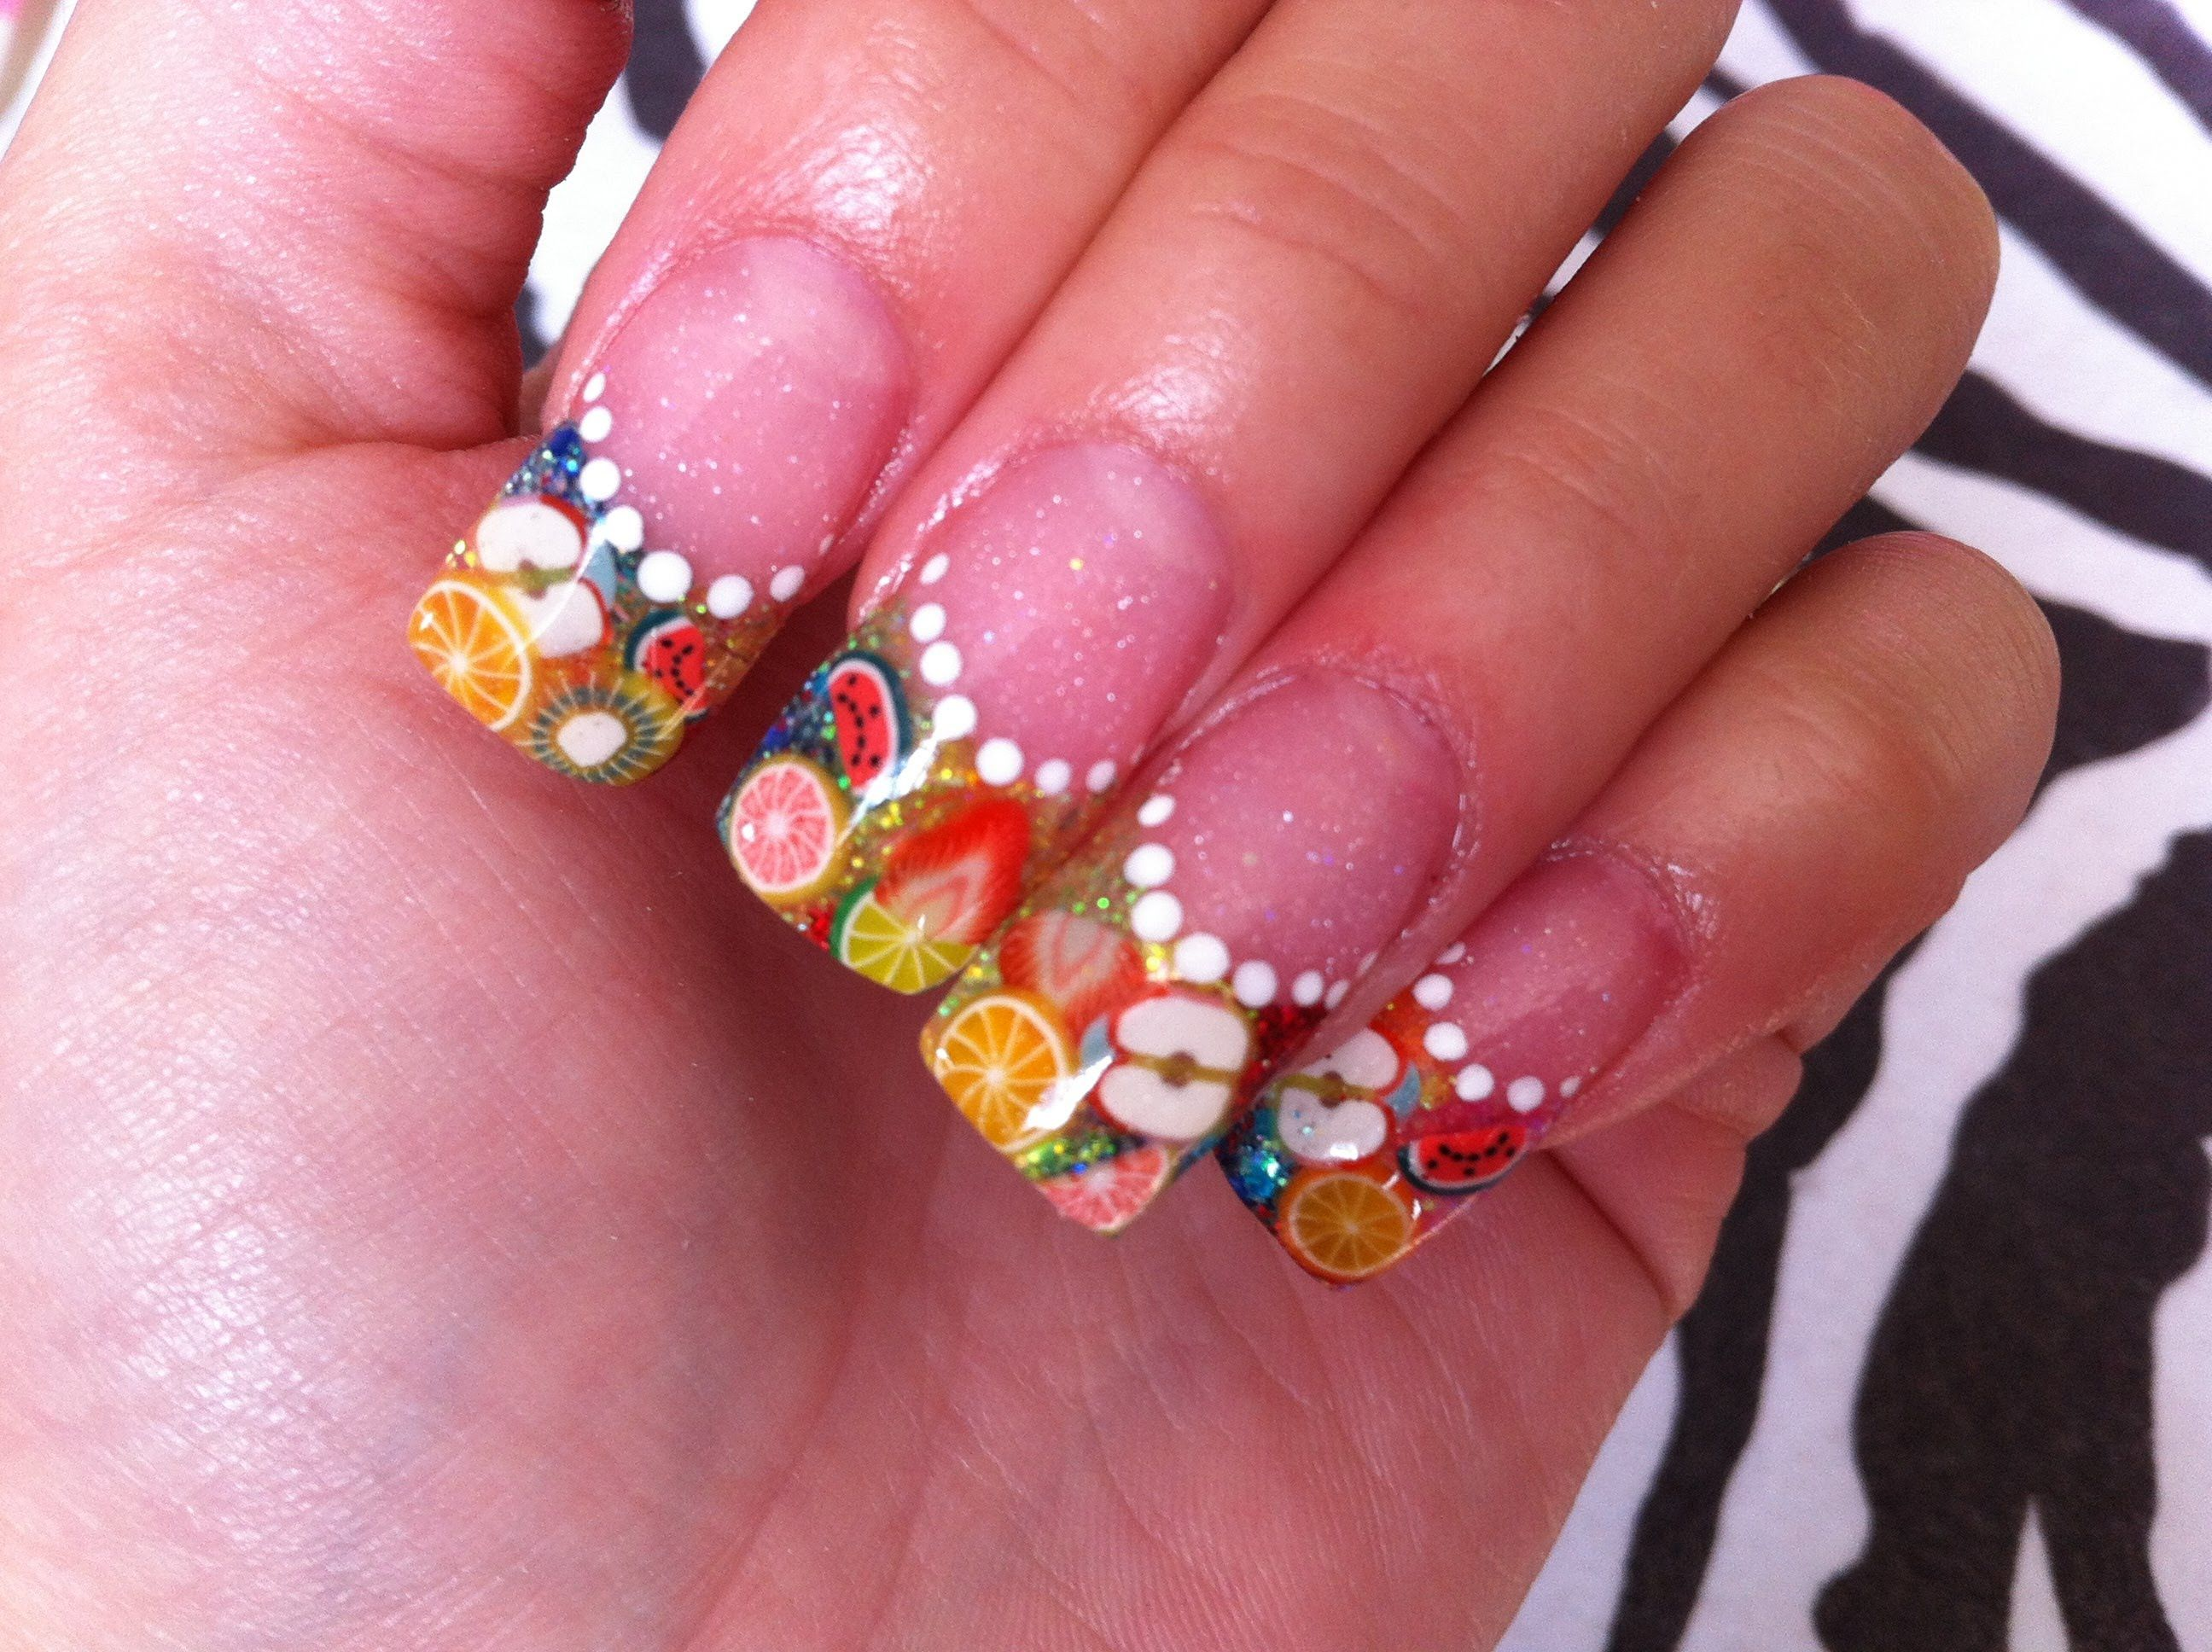 Fimo Fruit Acrylic Nails - Inspired by JennisseMakeup | Del you tube ...